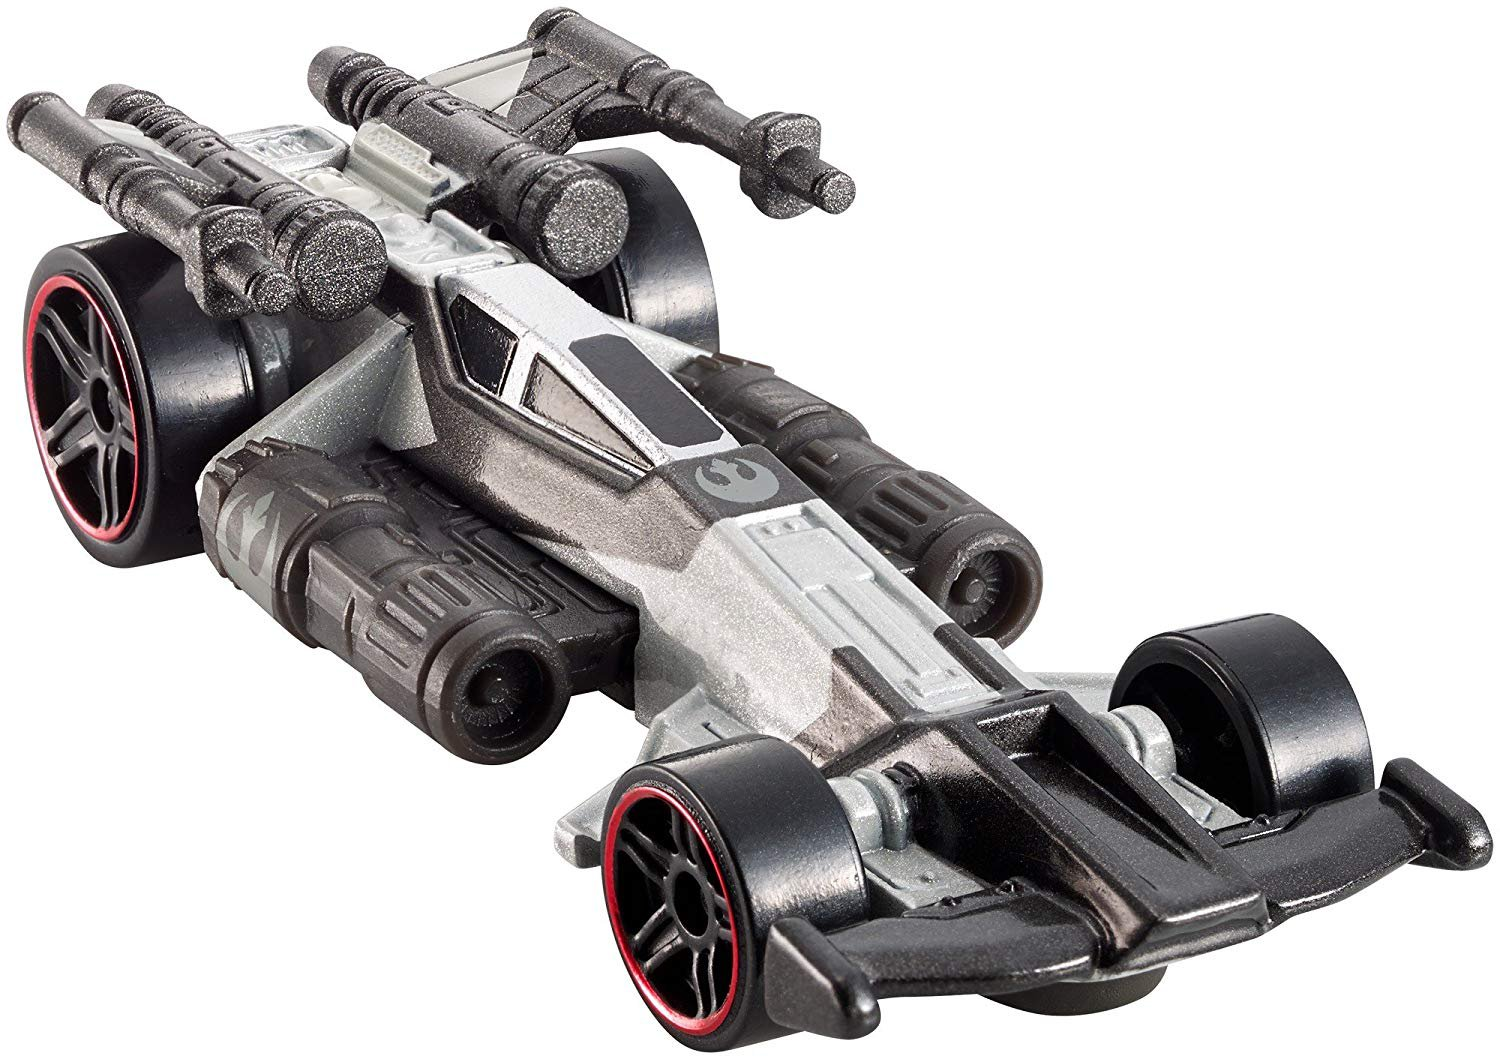 Hot Wheels Star Wars Rogue One Partisan X-Wing Fighter Carship